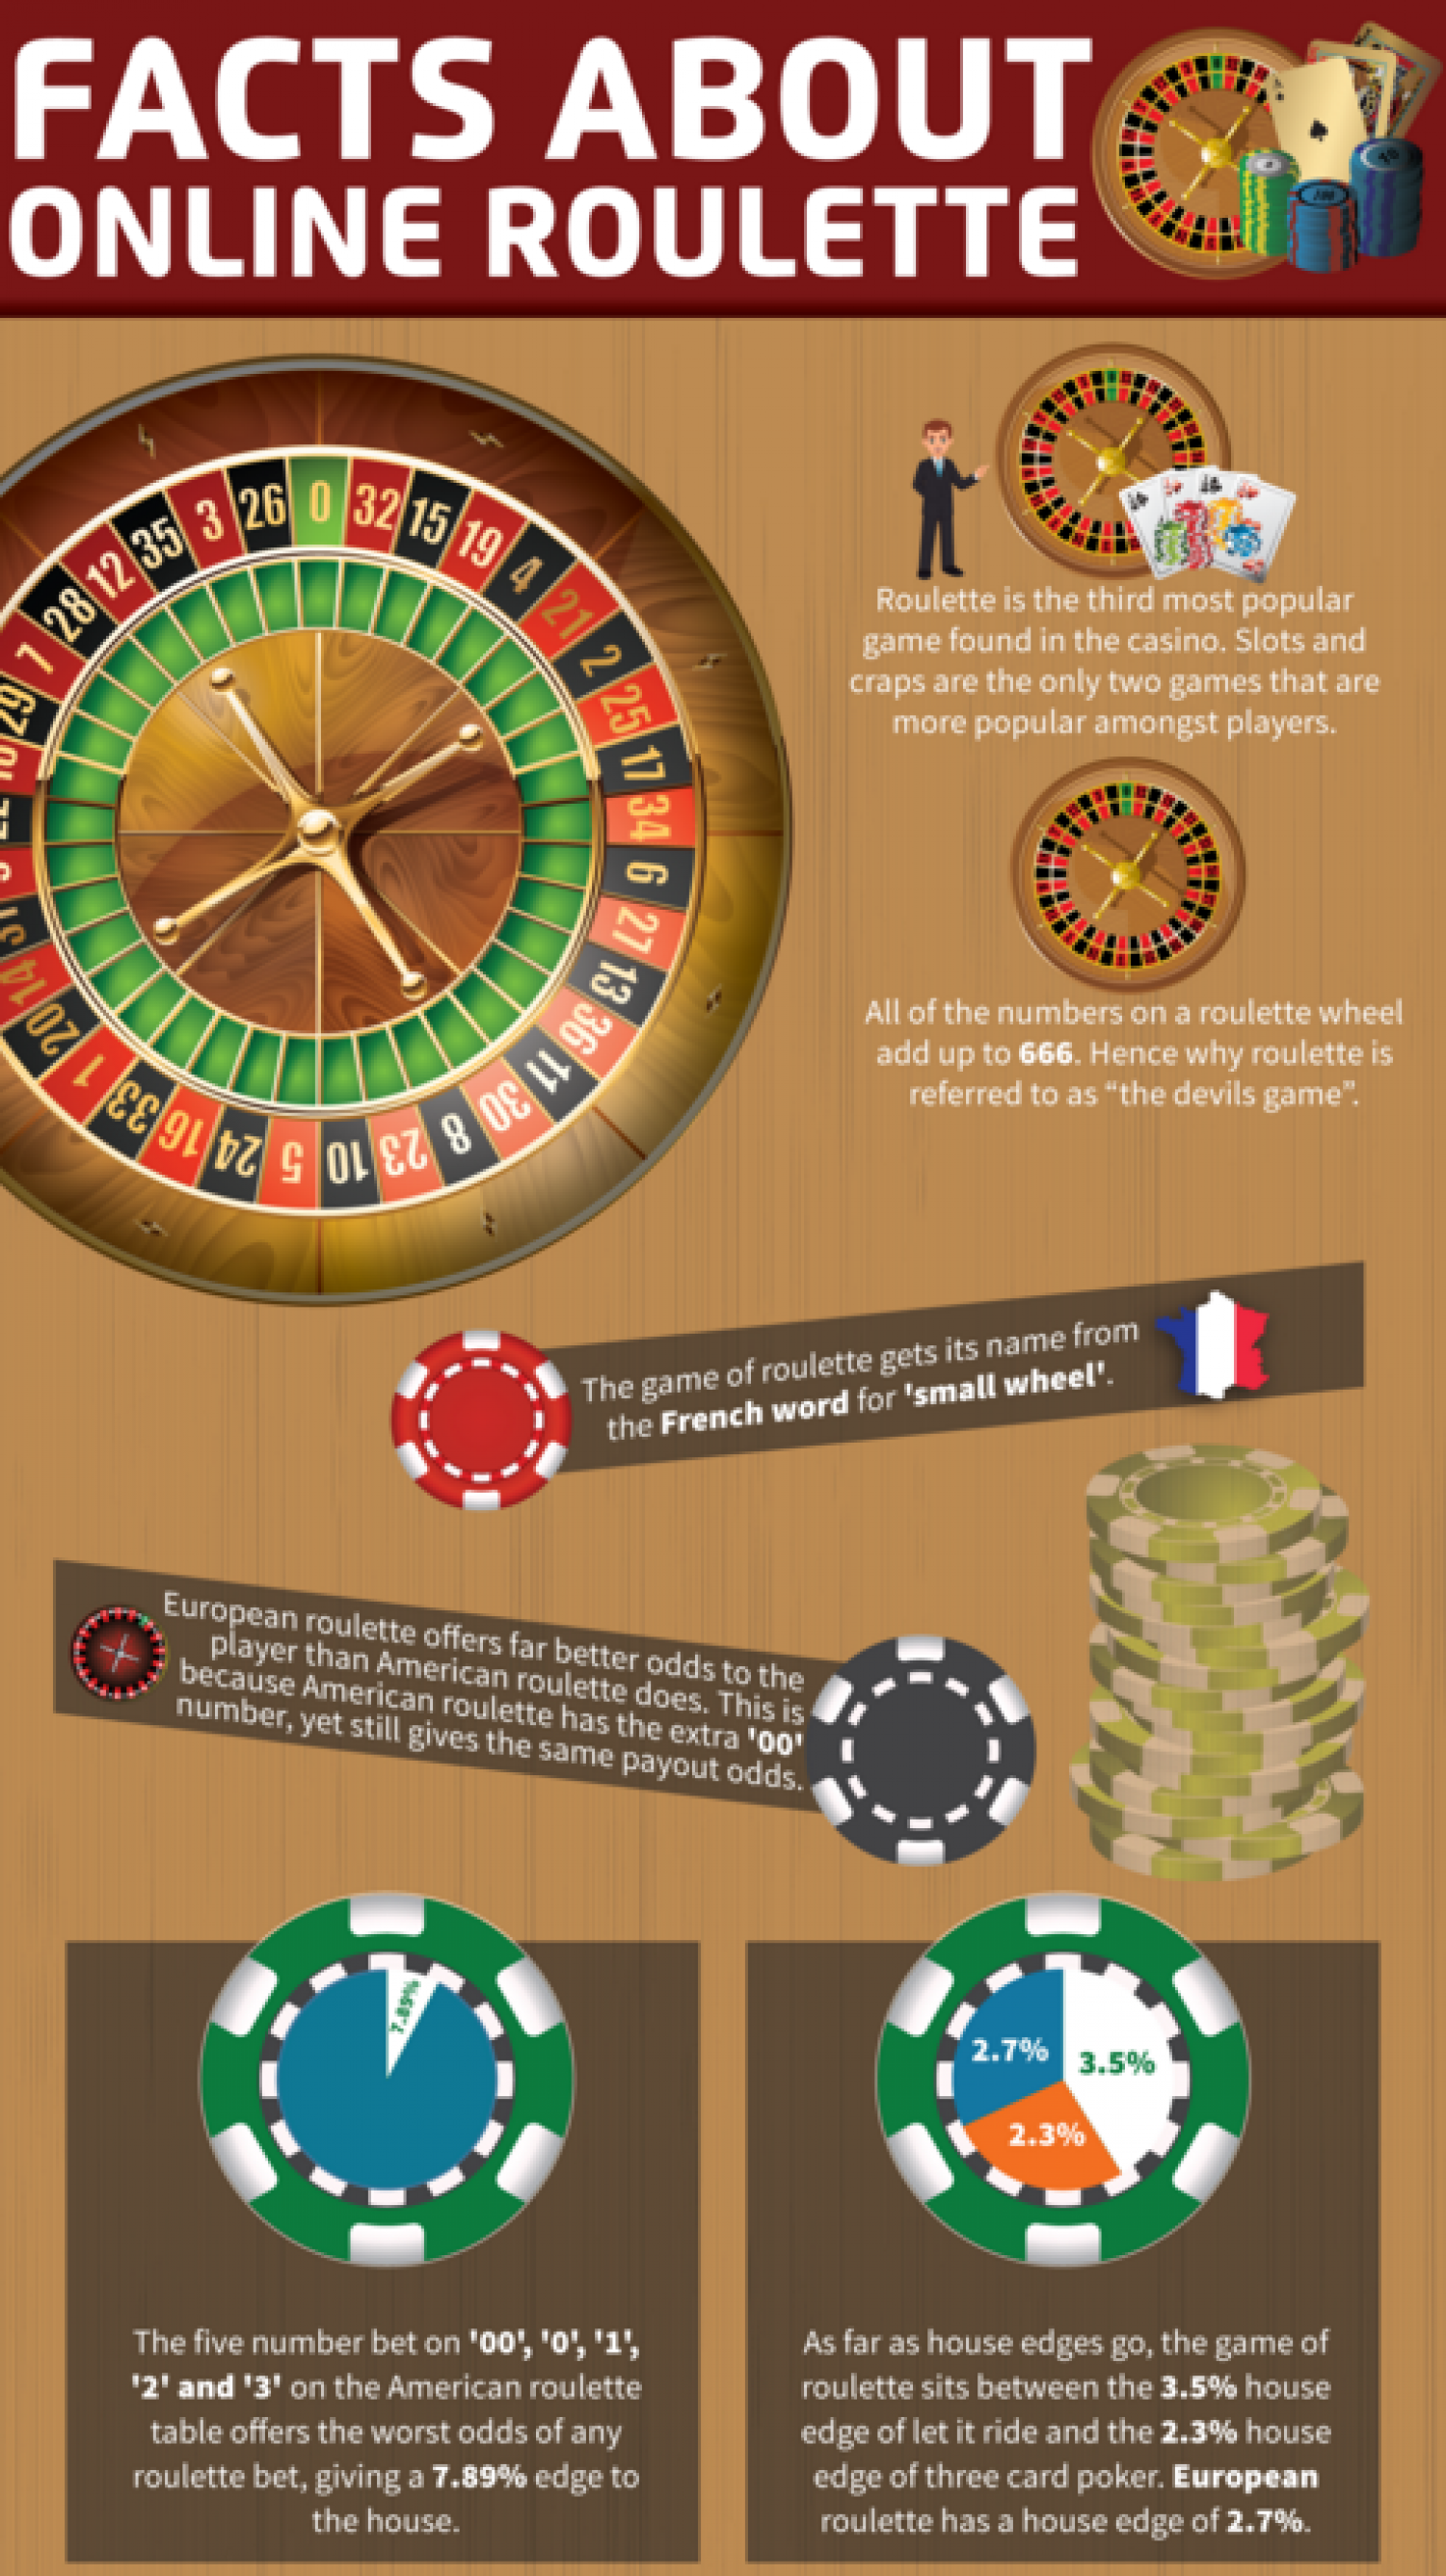 Facts About Online Roulette Infographic